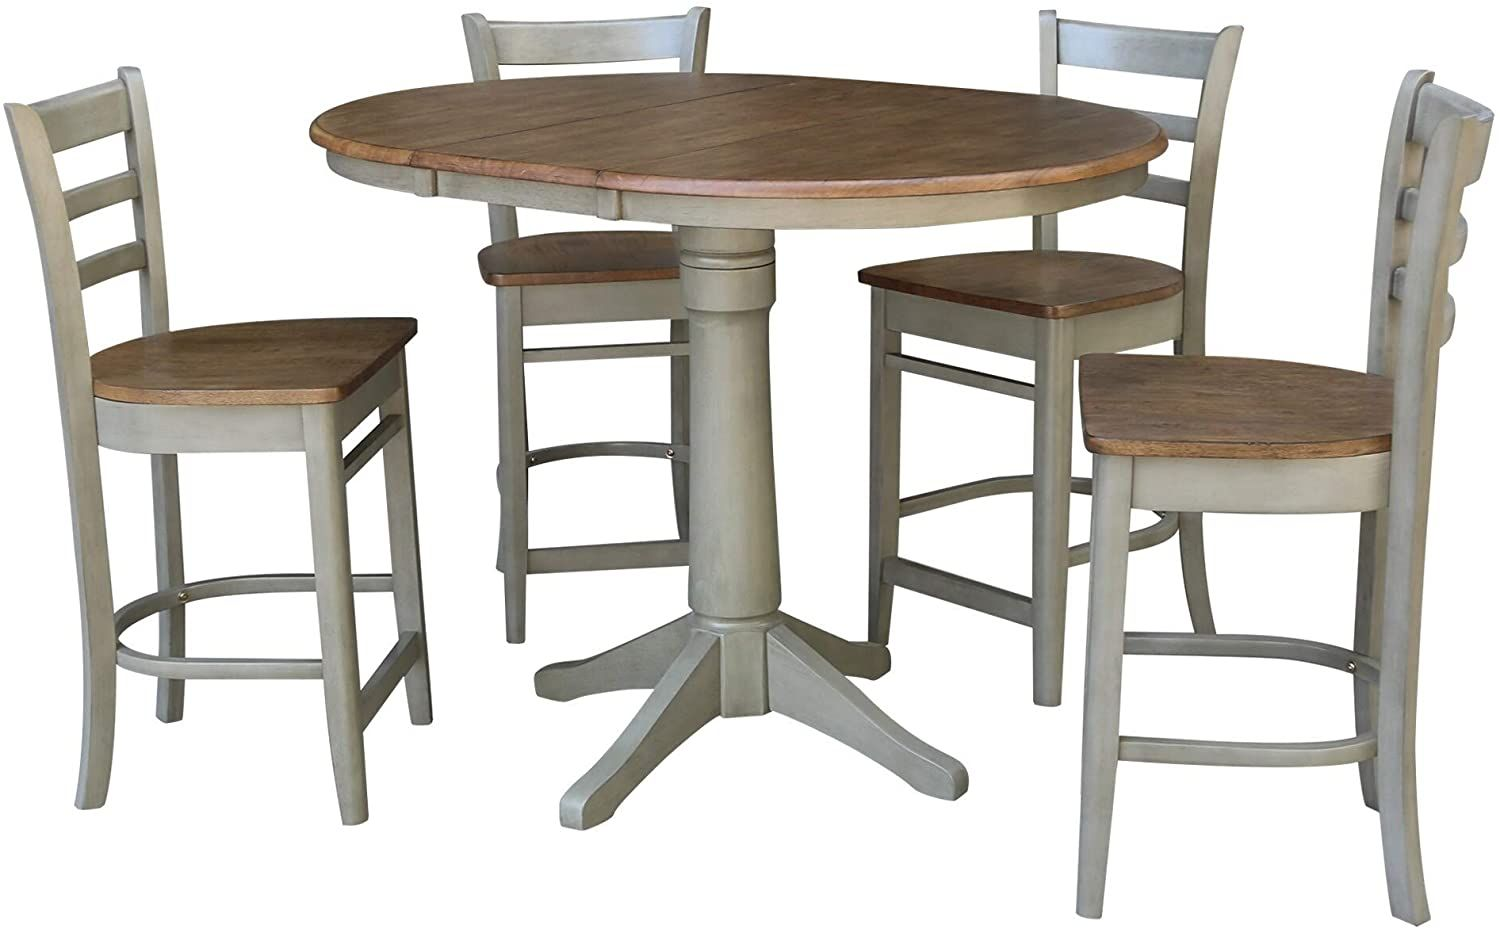 Misc 36 Round Extension Dining Table With 4 Counter Height Stools